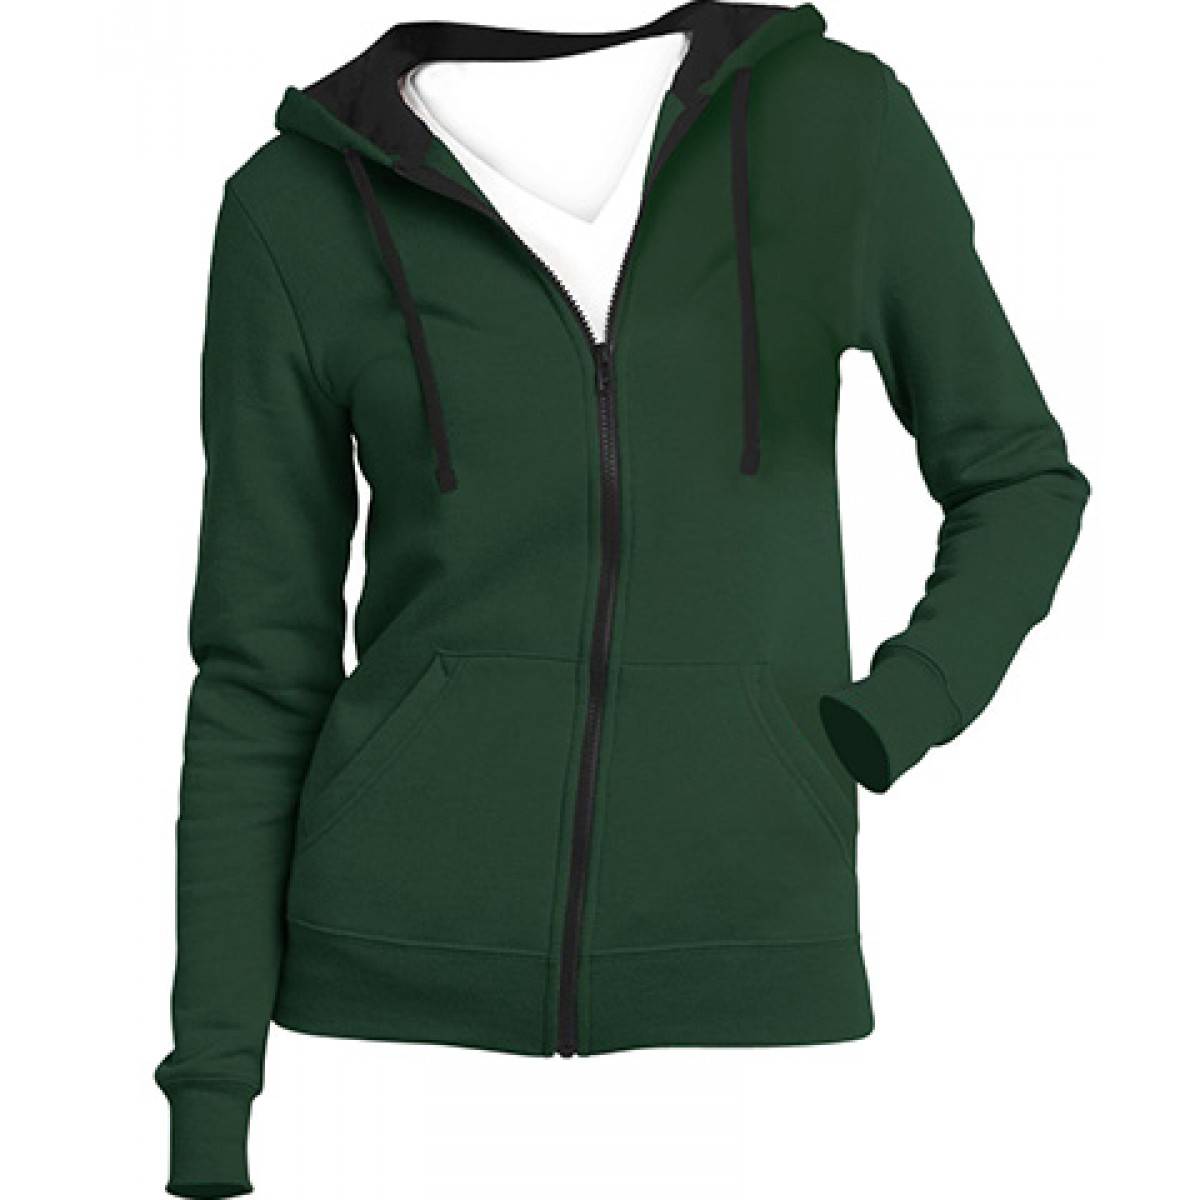 Juniors Full-Zip Hoodie-Green-2XL